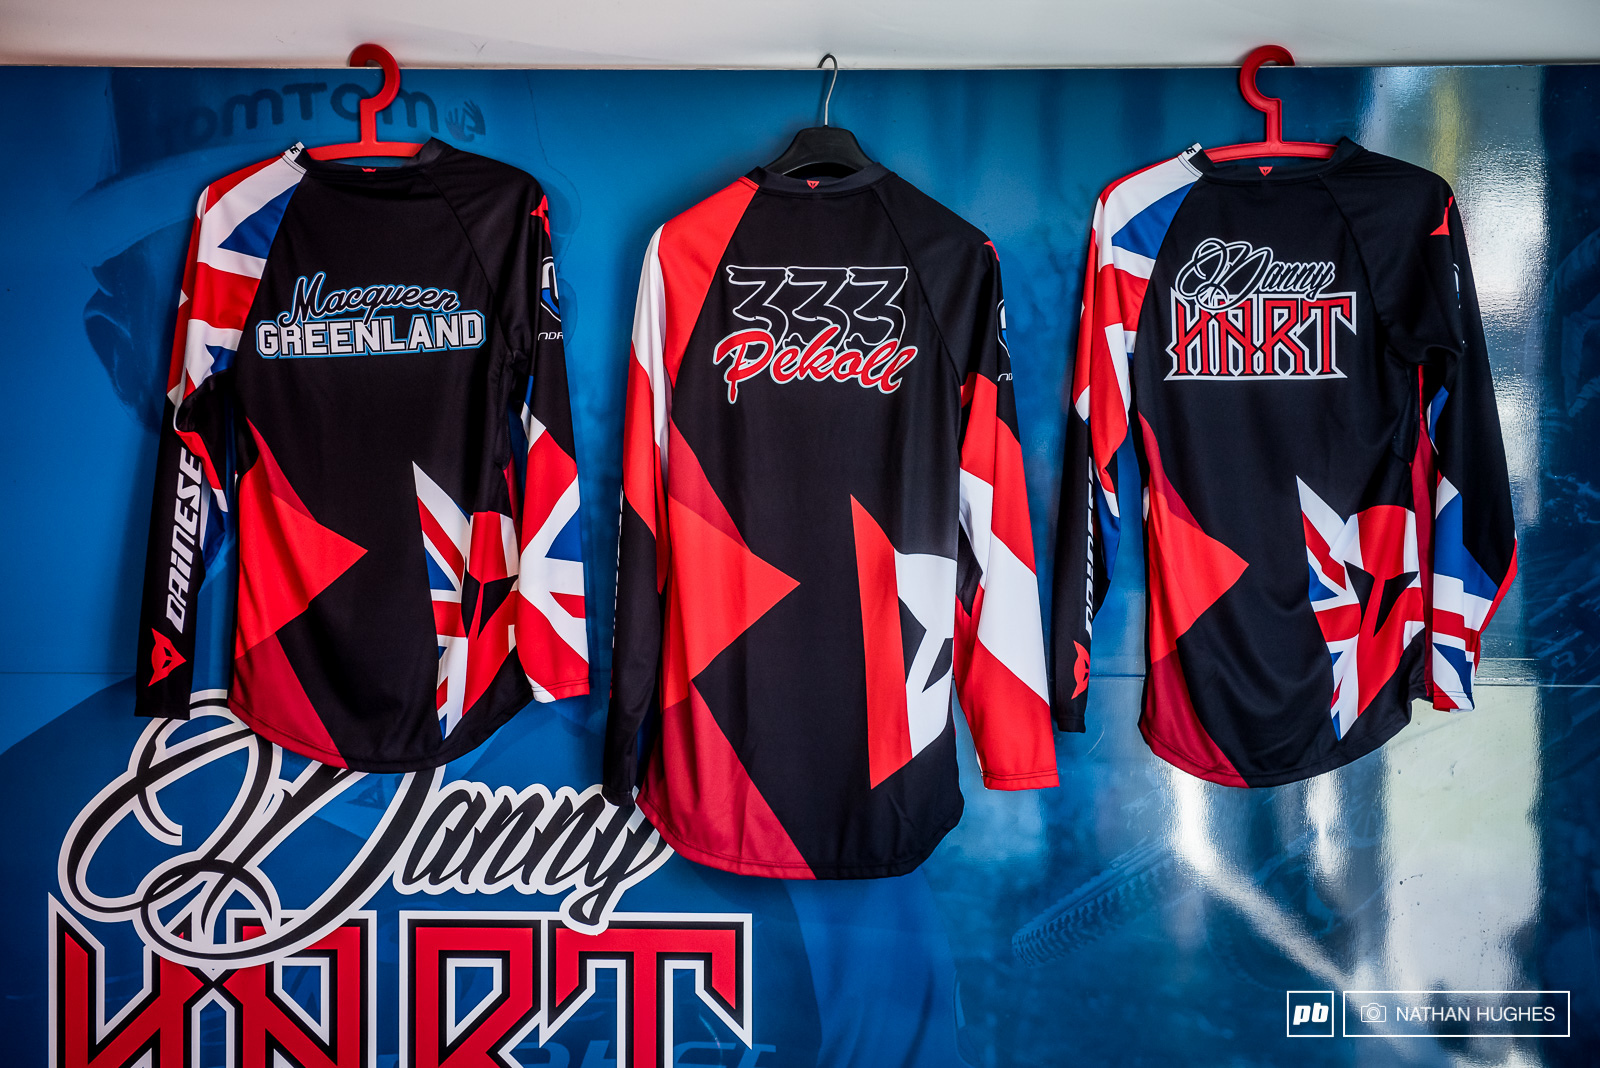 New threads for the fastest team in the World.